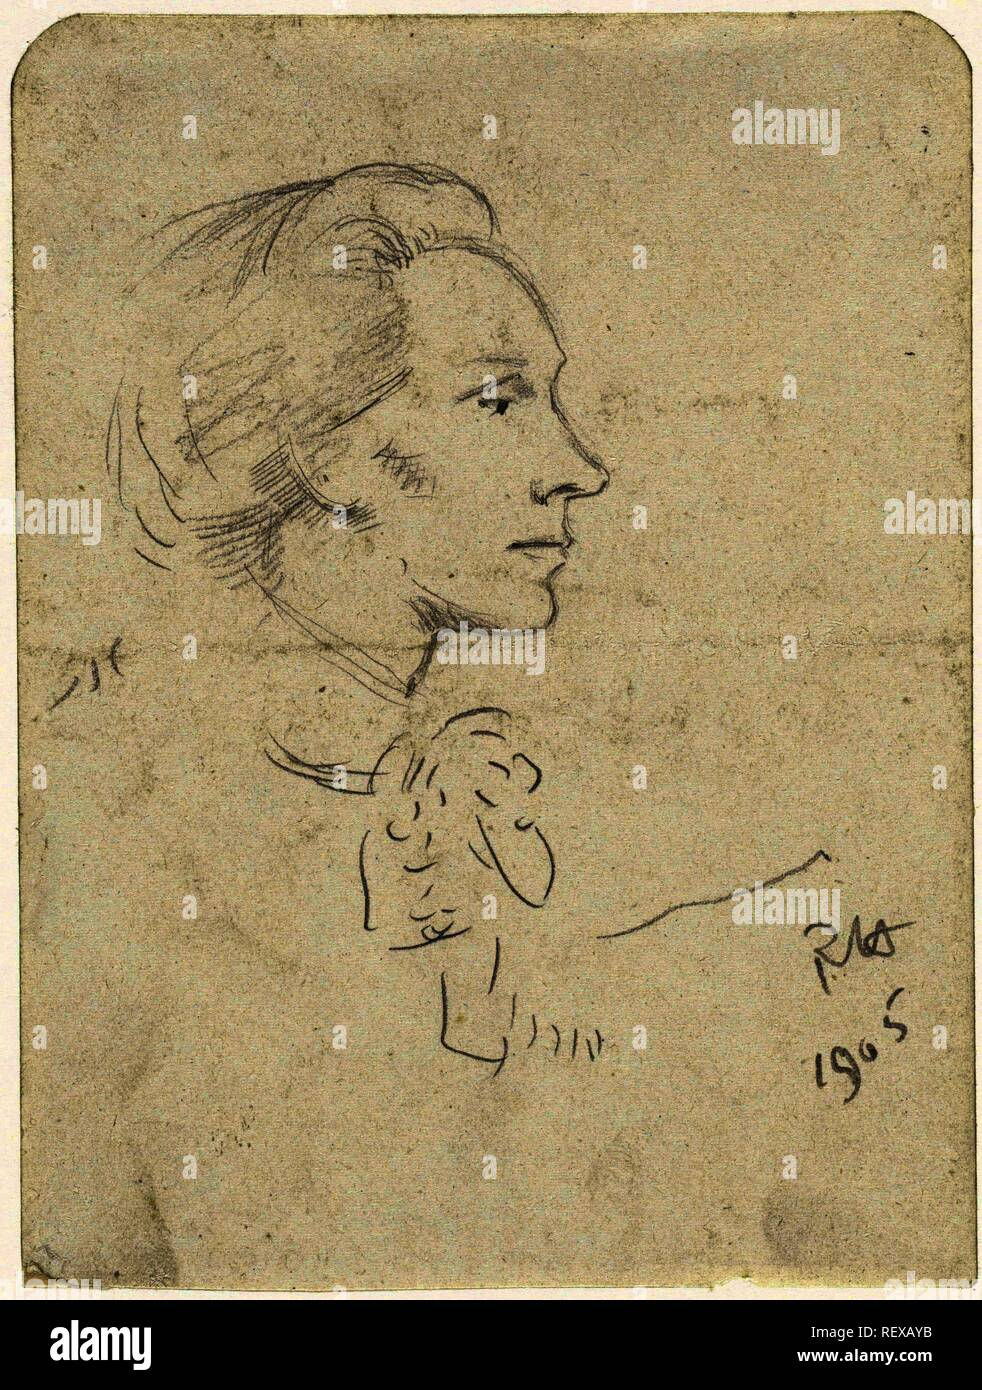 Sketch By Henritte Roland Holst Van Der Schalk From The